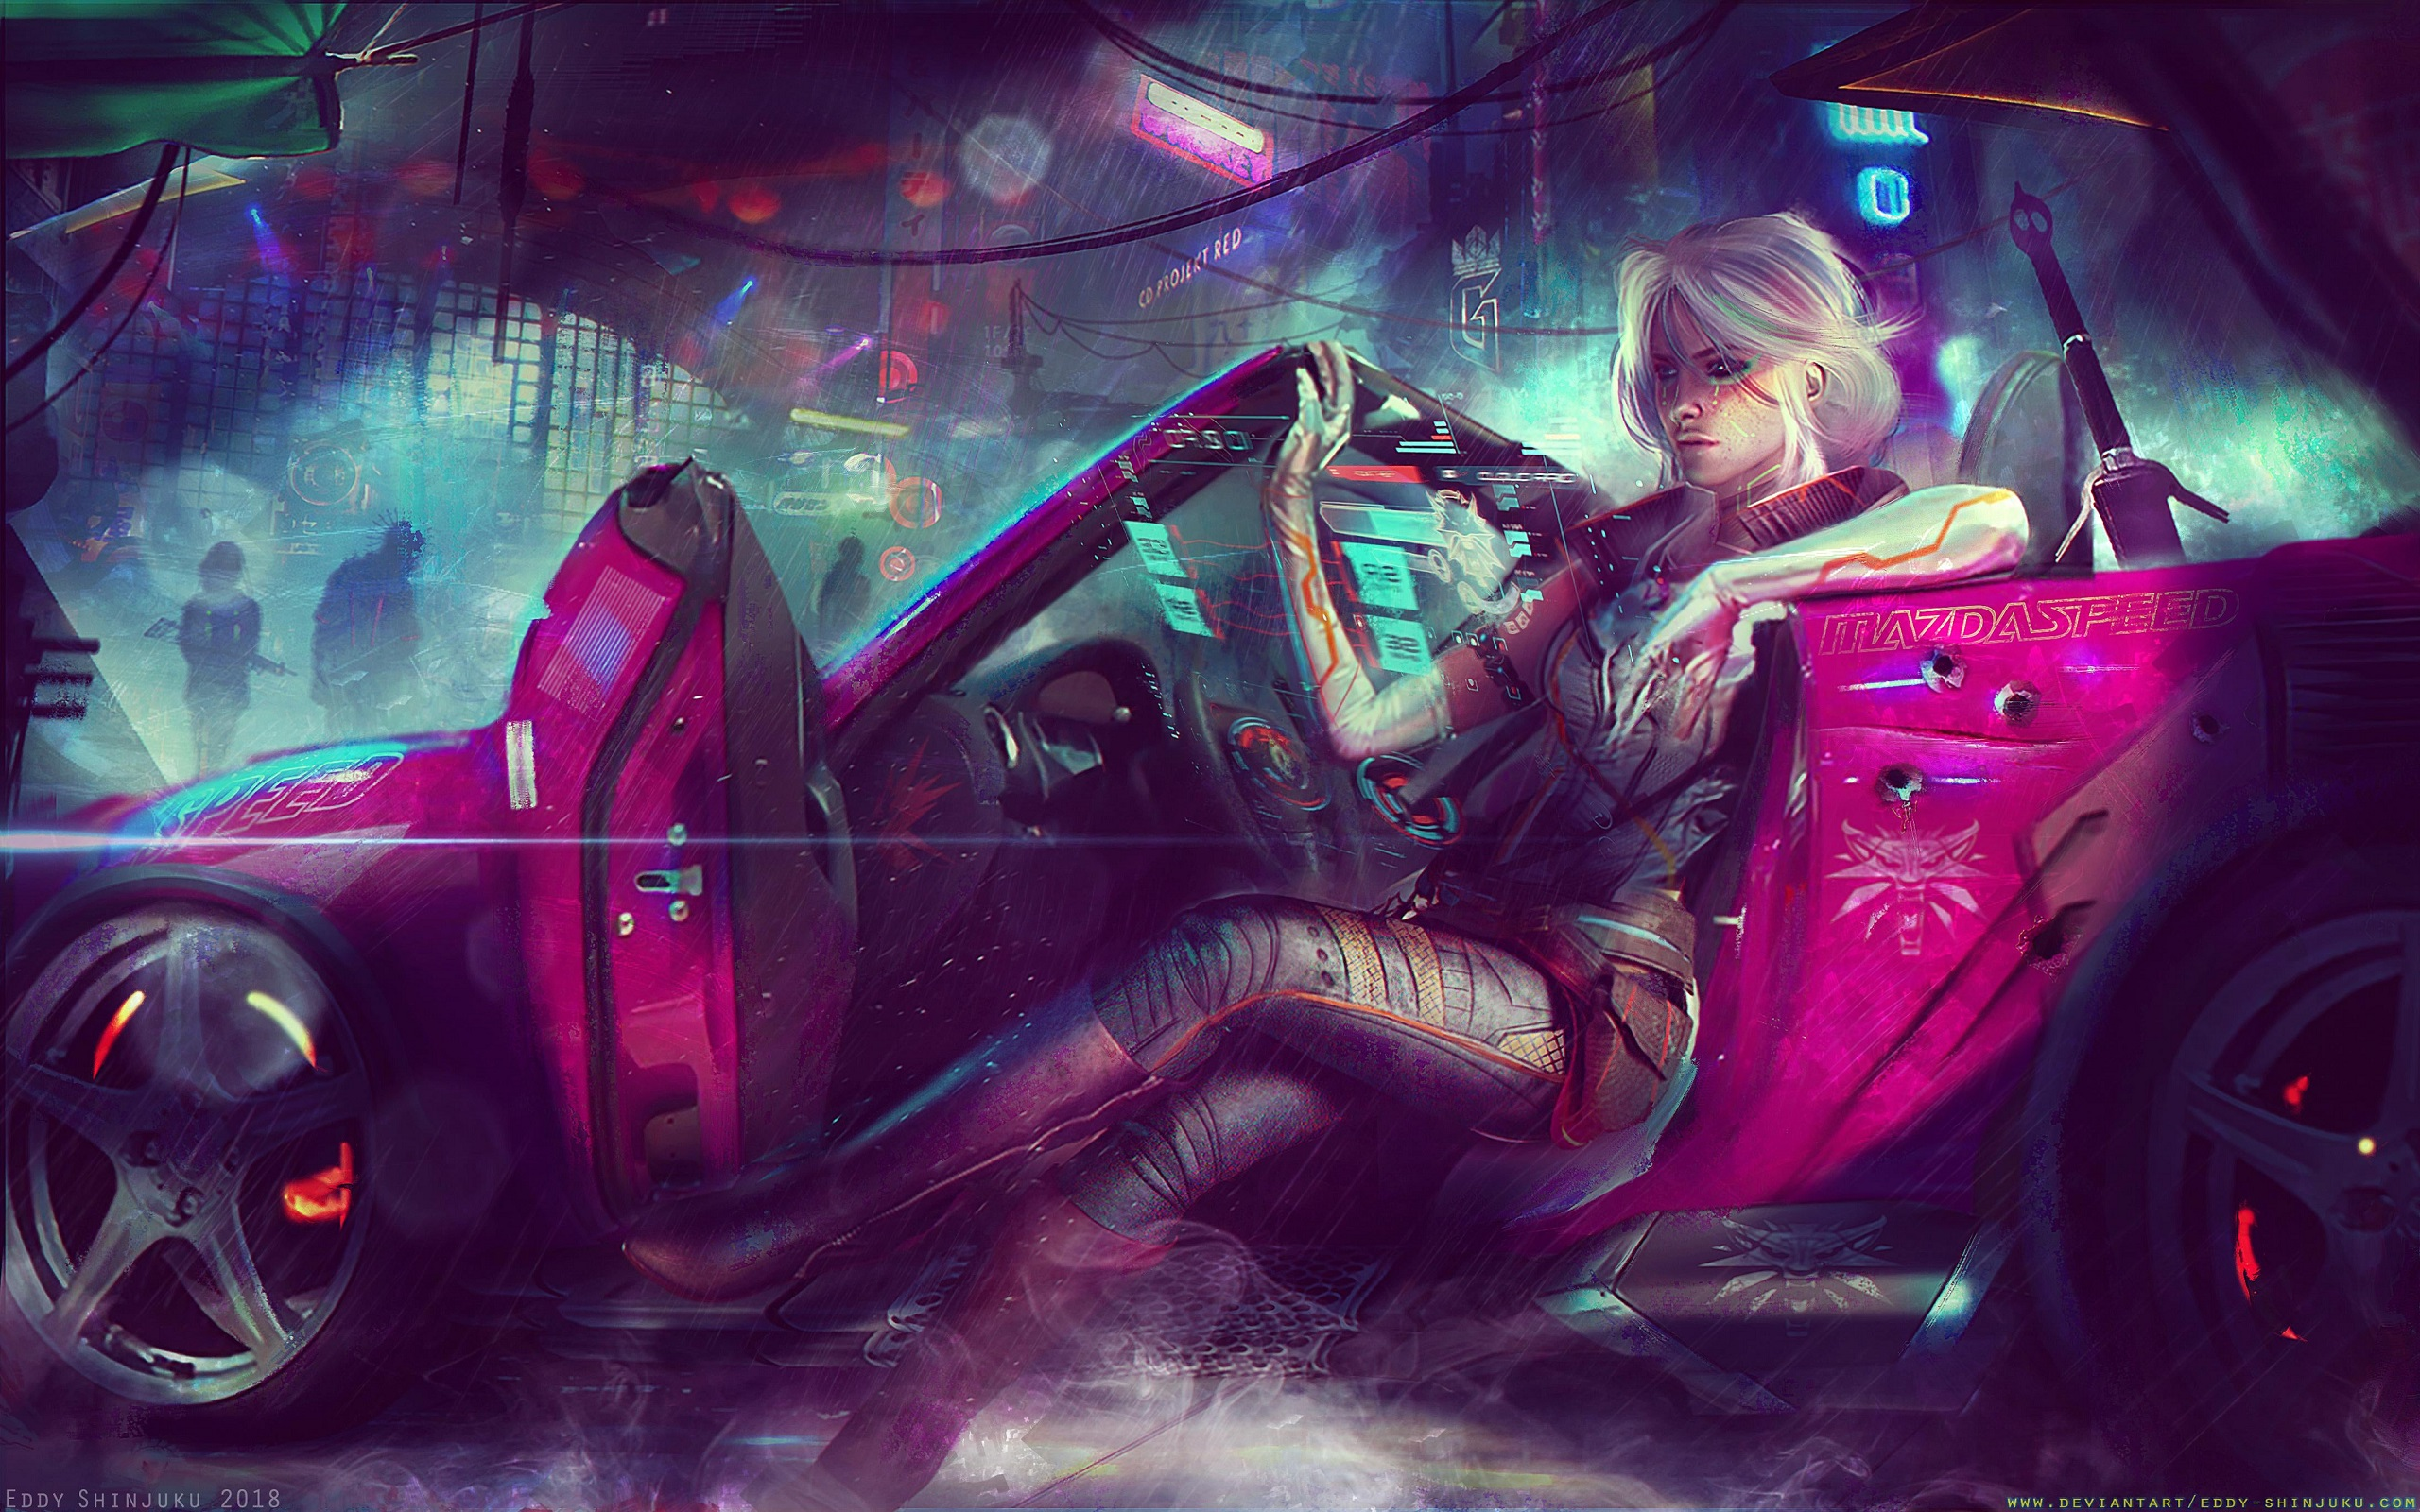 General 2560x1600 Ciri The Witcher women artwork futuristic digital art crossover car mazdaspeed Mazda MX-5  Cyberpunk 2077 cyberpunk